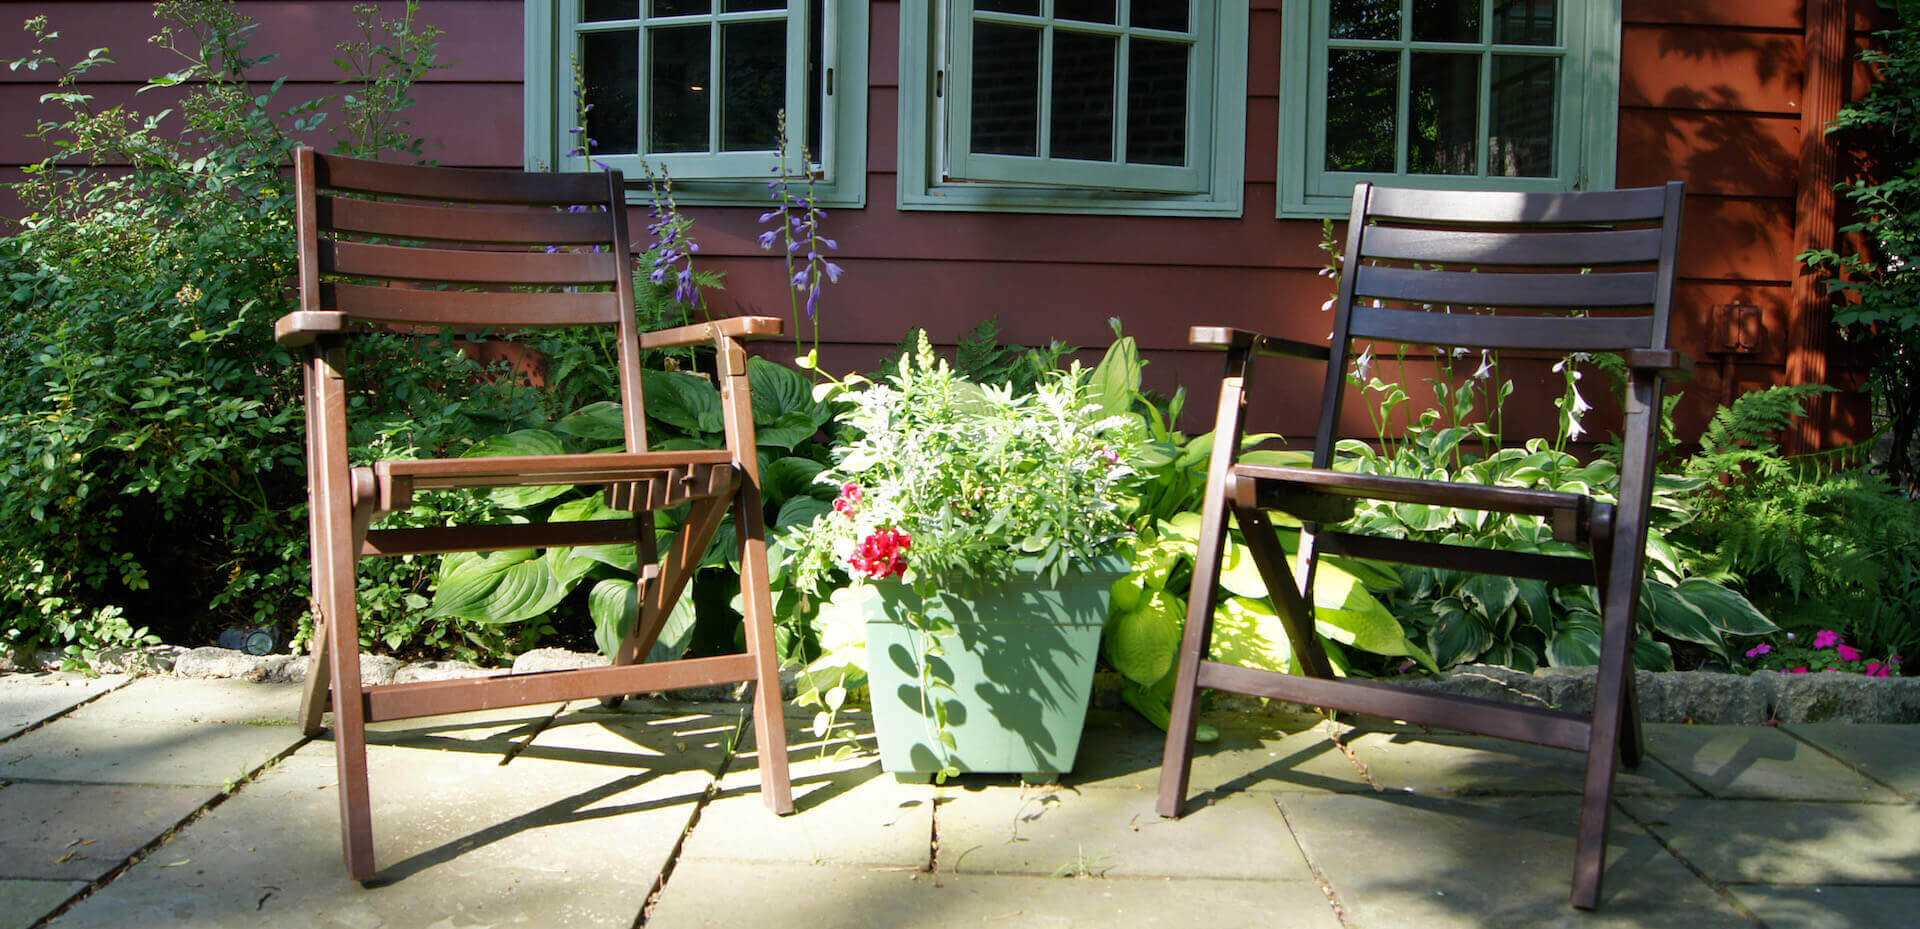 two chairs with flower pot in between them